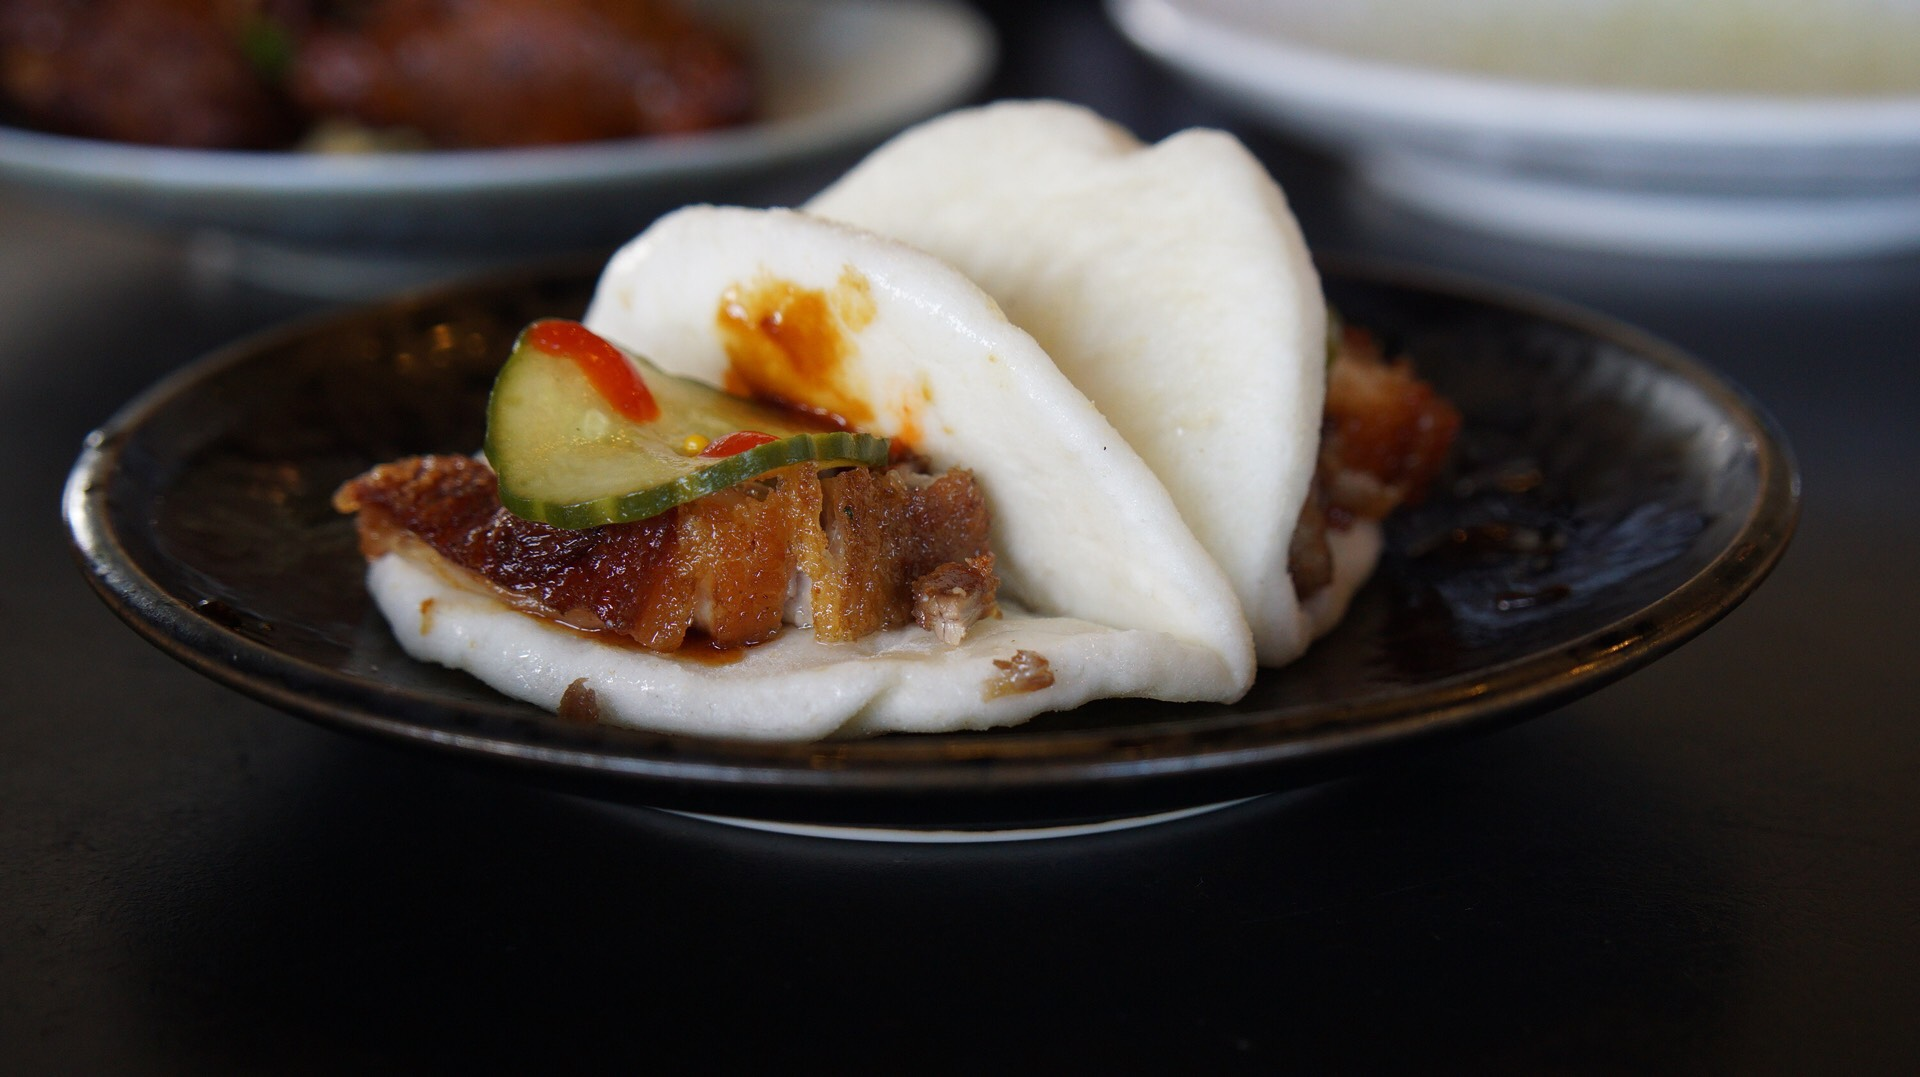 More of this delicious bao please!